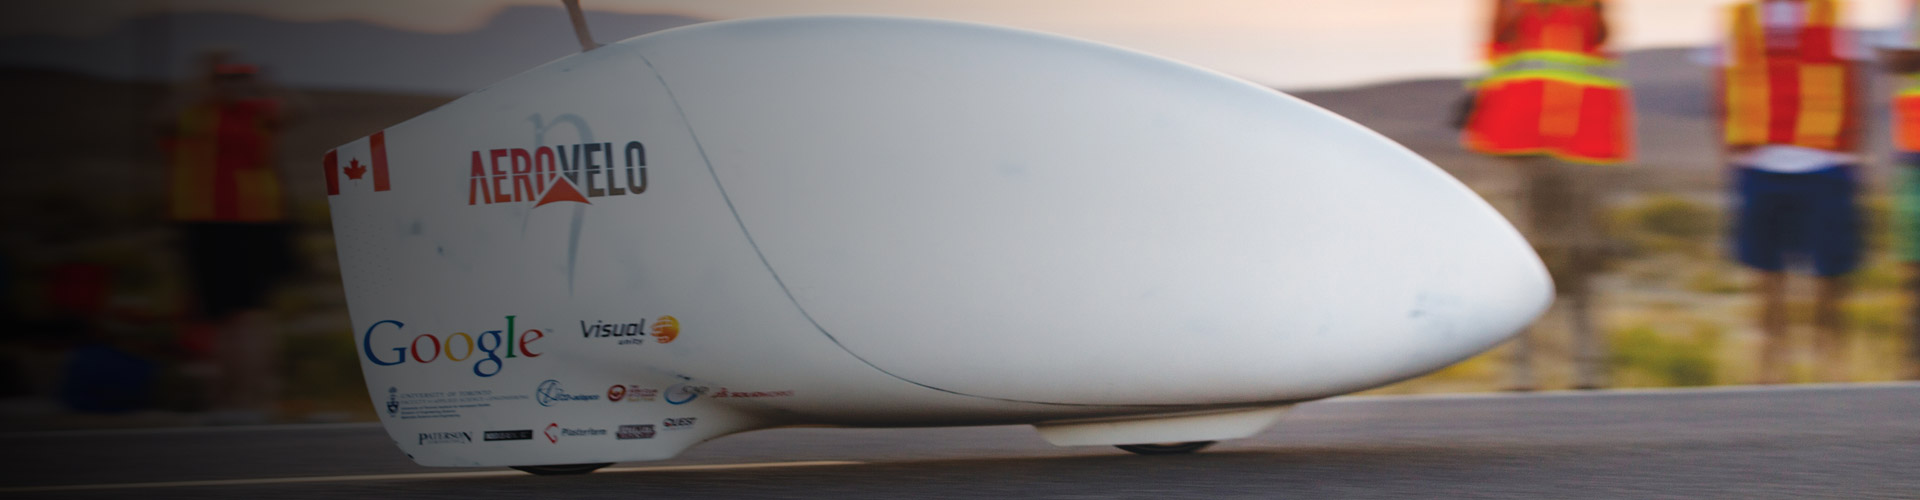 AeroVelo Featured Newsroom Post